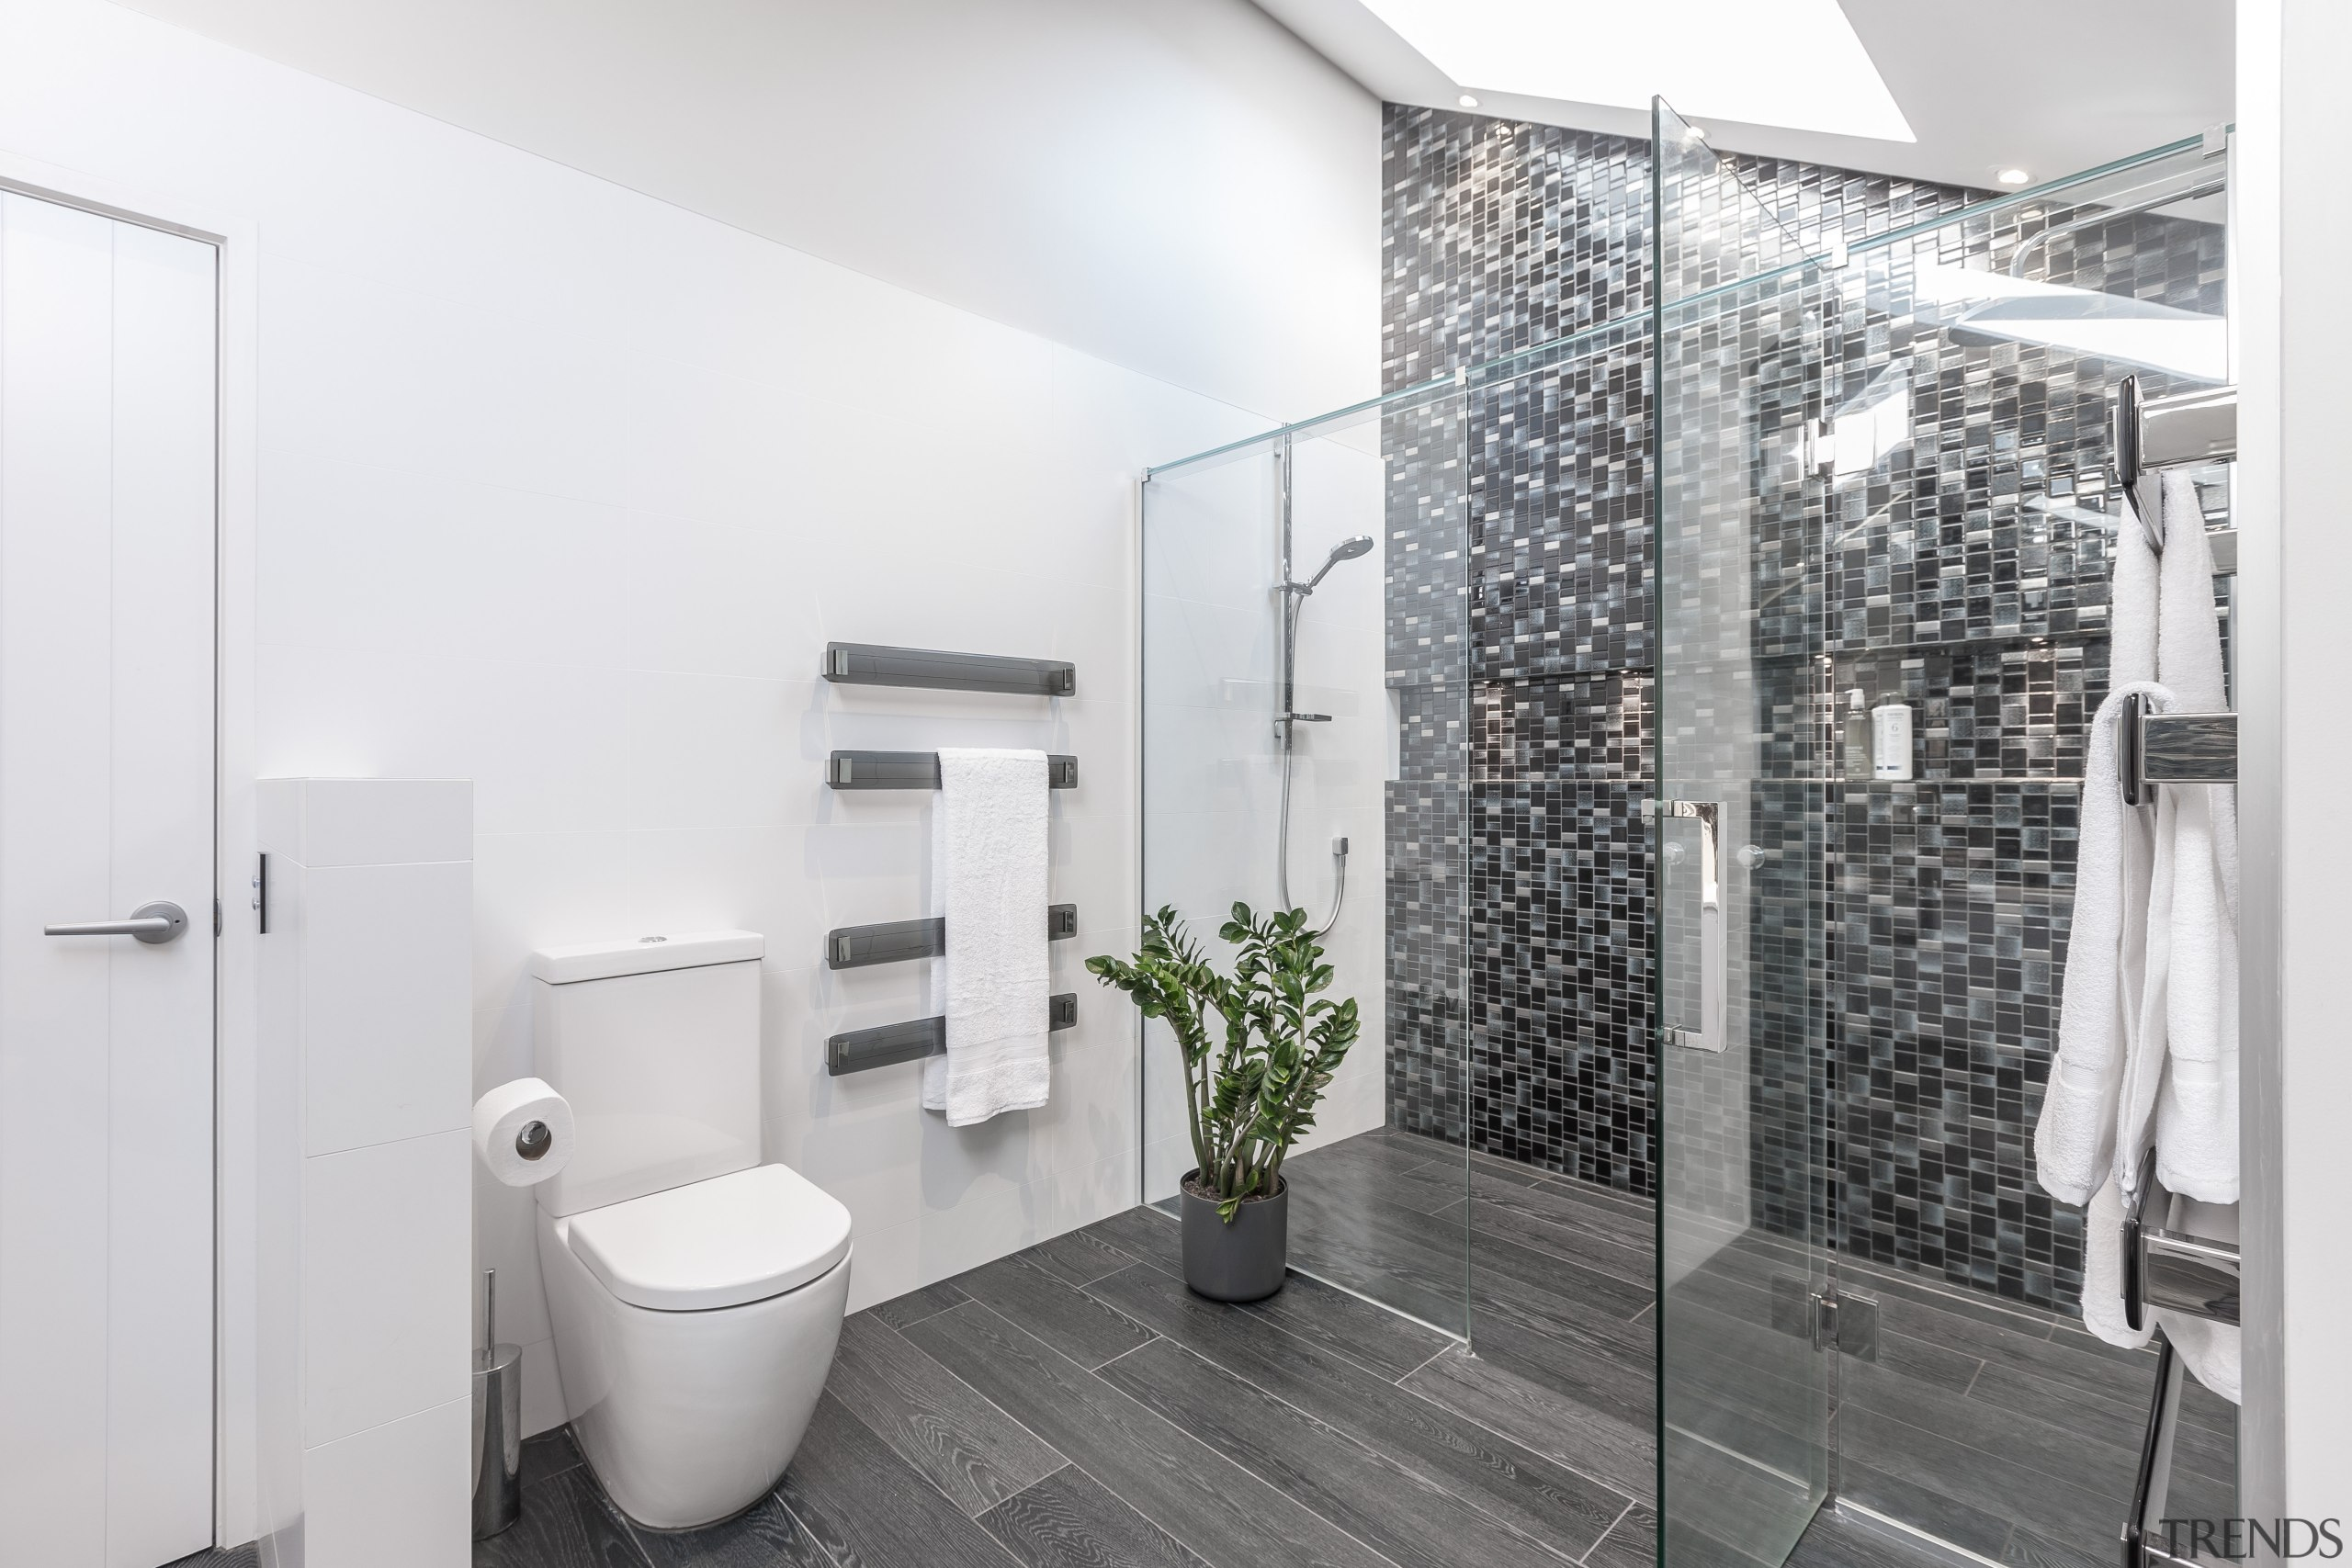 Twinkling mosaics, a glass shower stall and a architecture, bathroom, home, interior design, real estate, room, white, gray